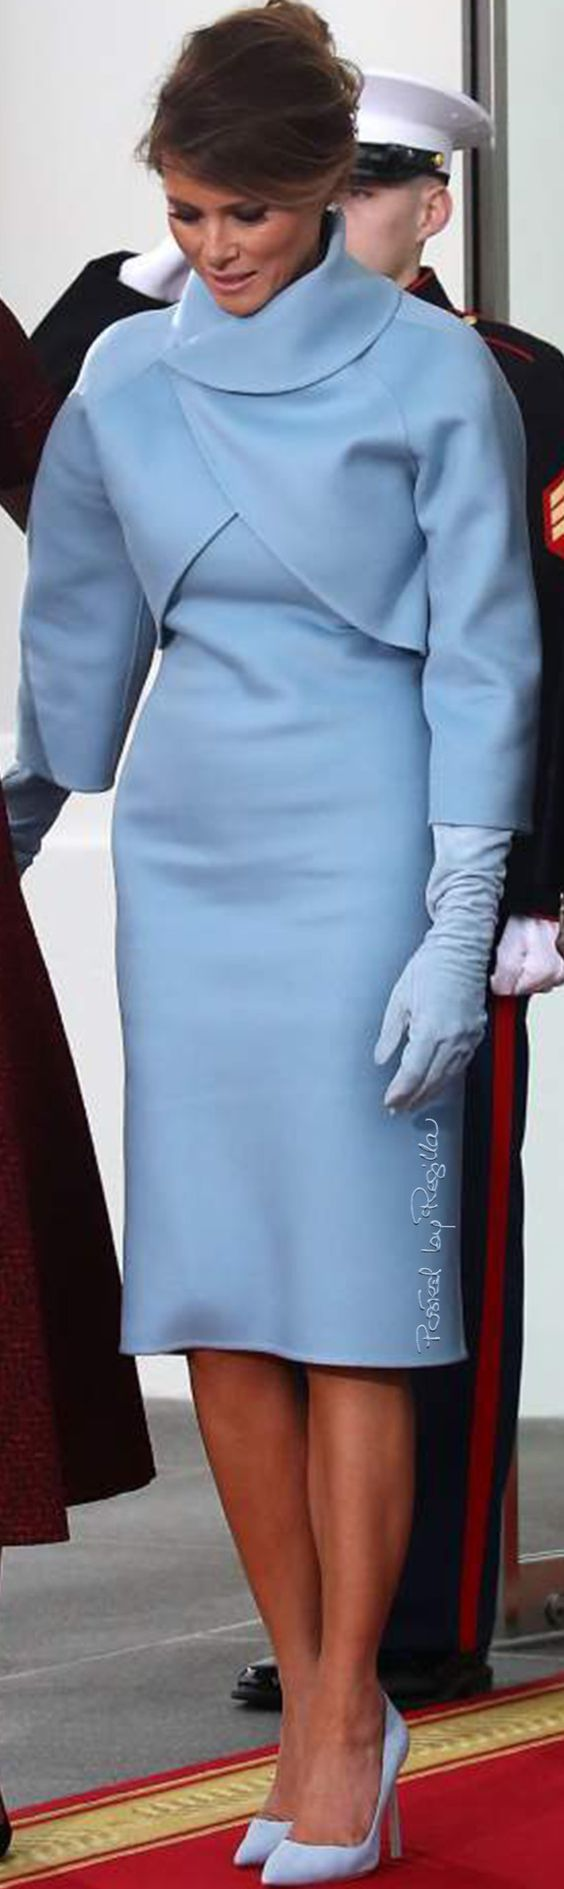 Beautiful in blue!! /Regilla ⚜ Melania Trump: